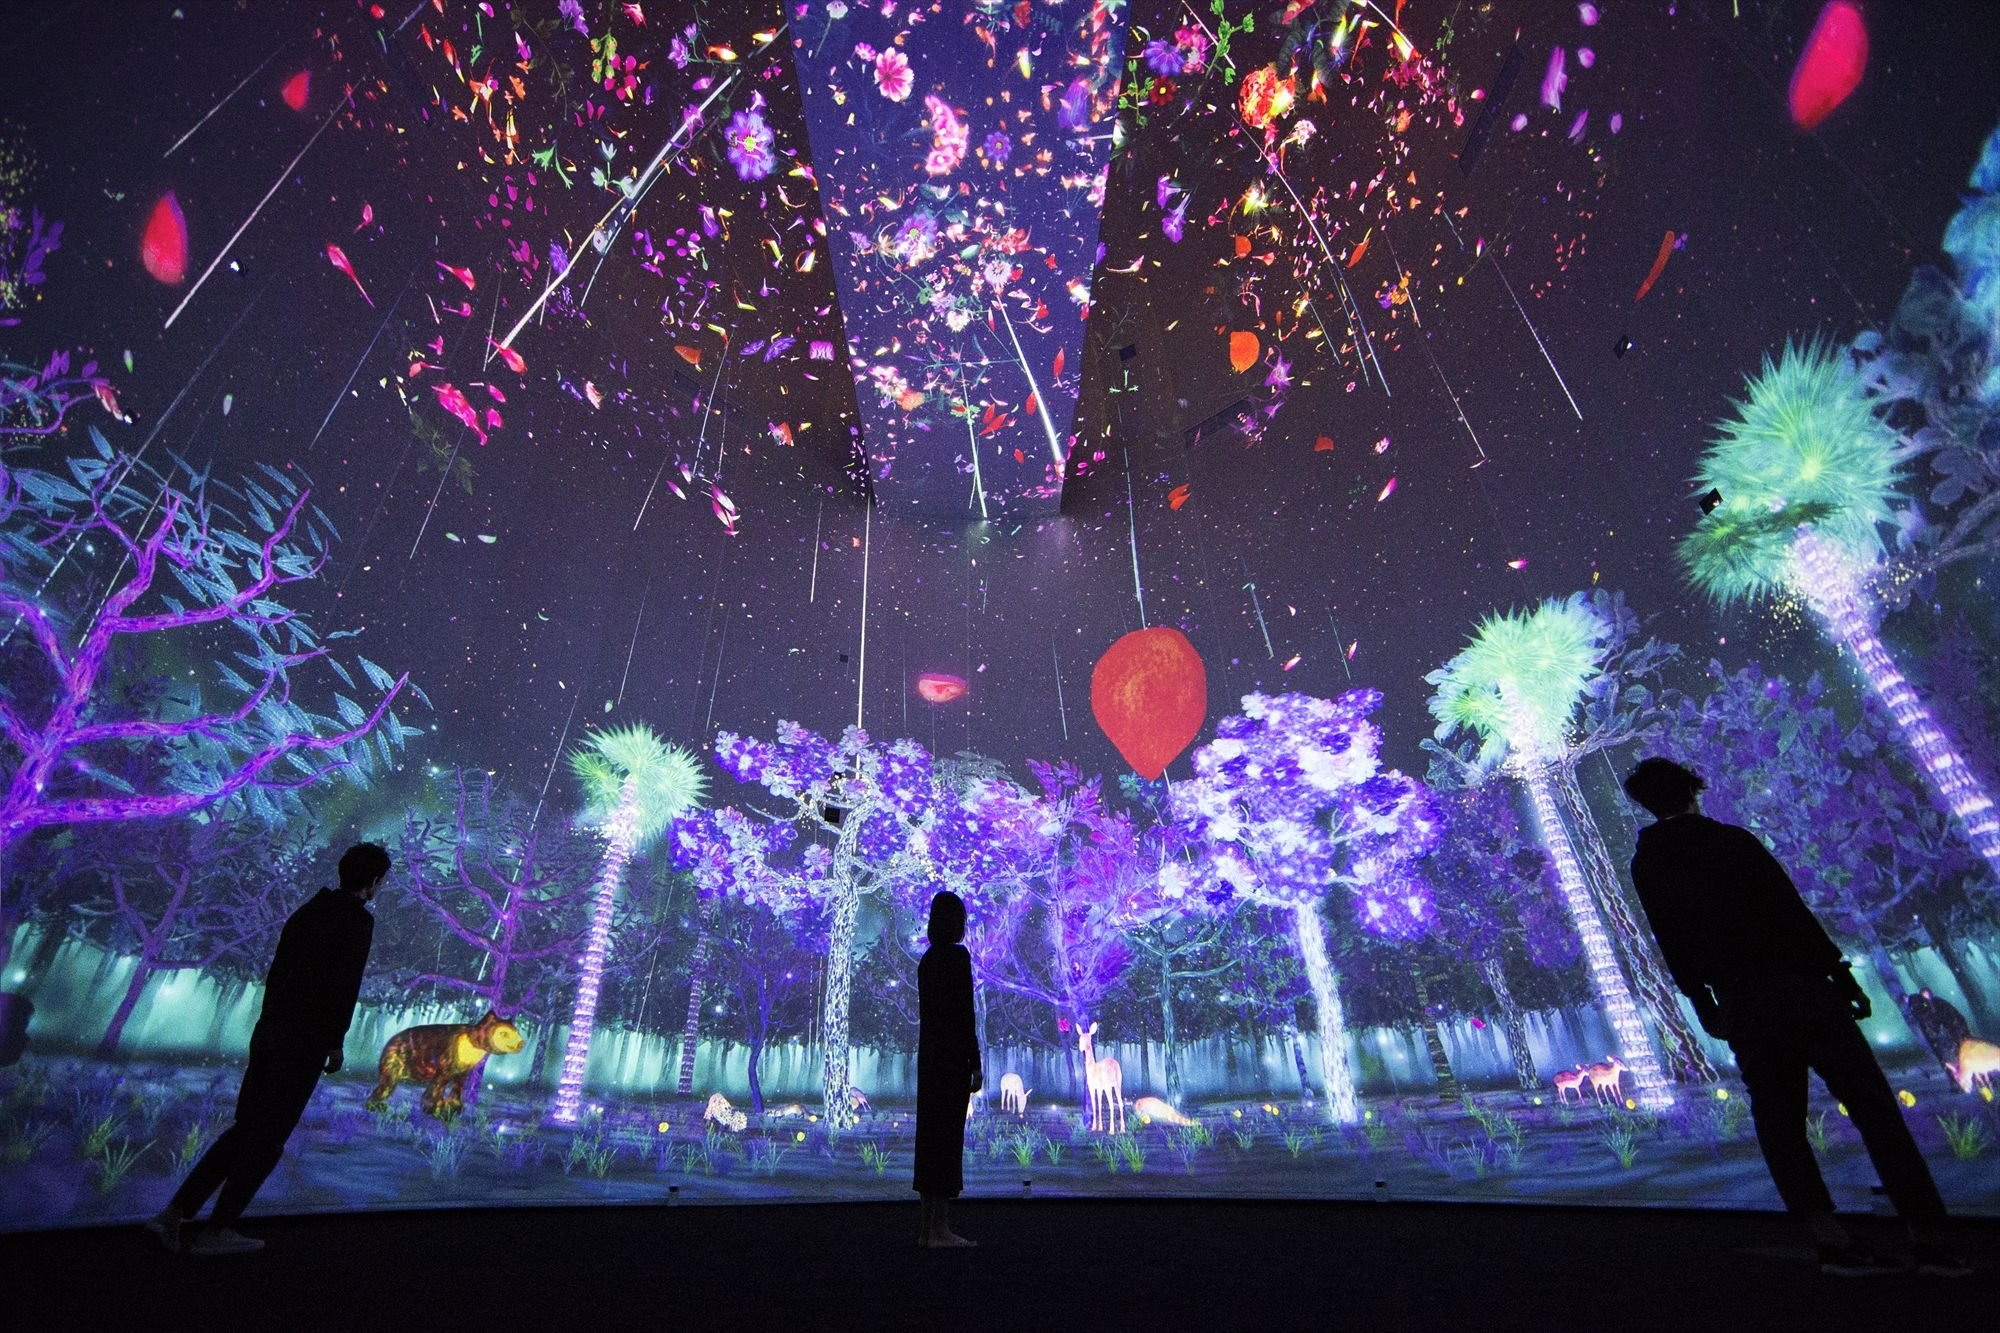 National Museum Of Singapore Teamlab チームラボ